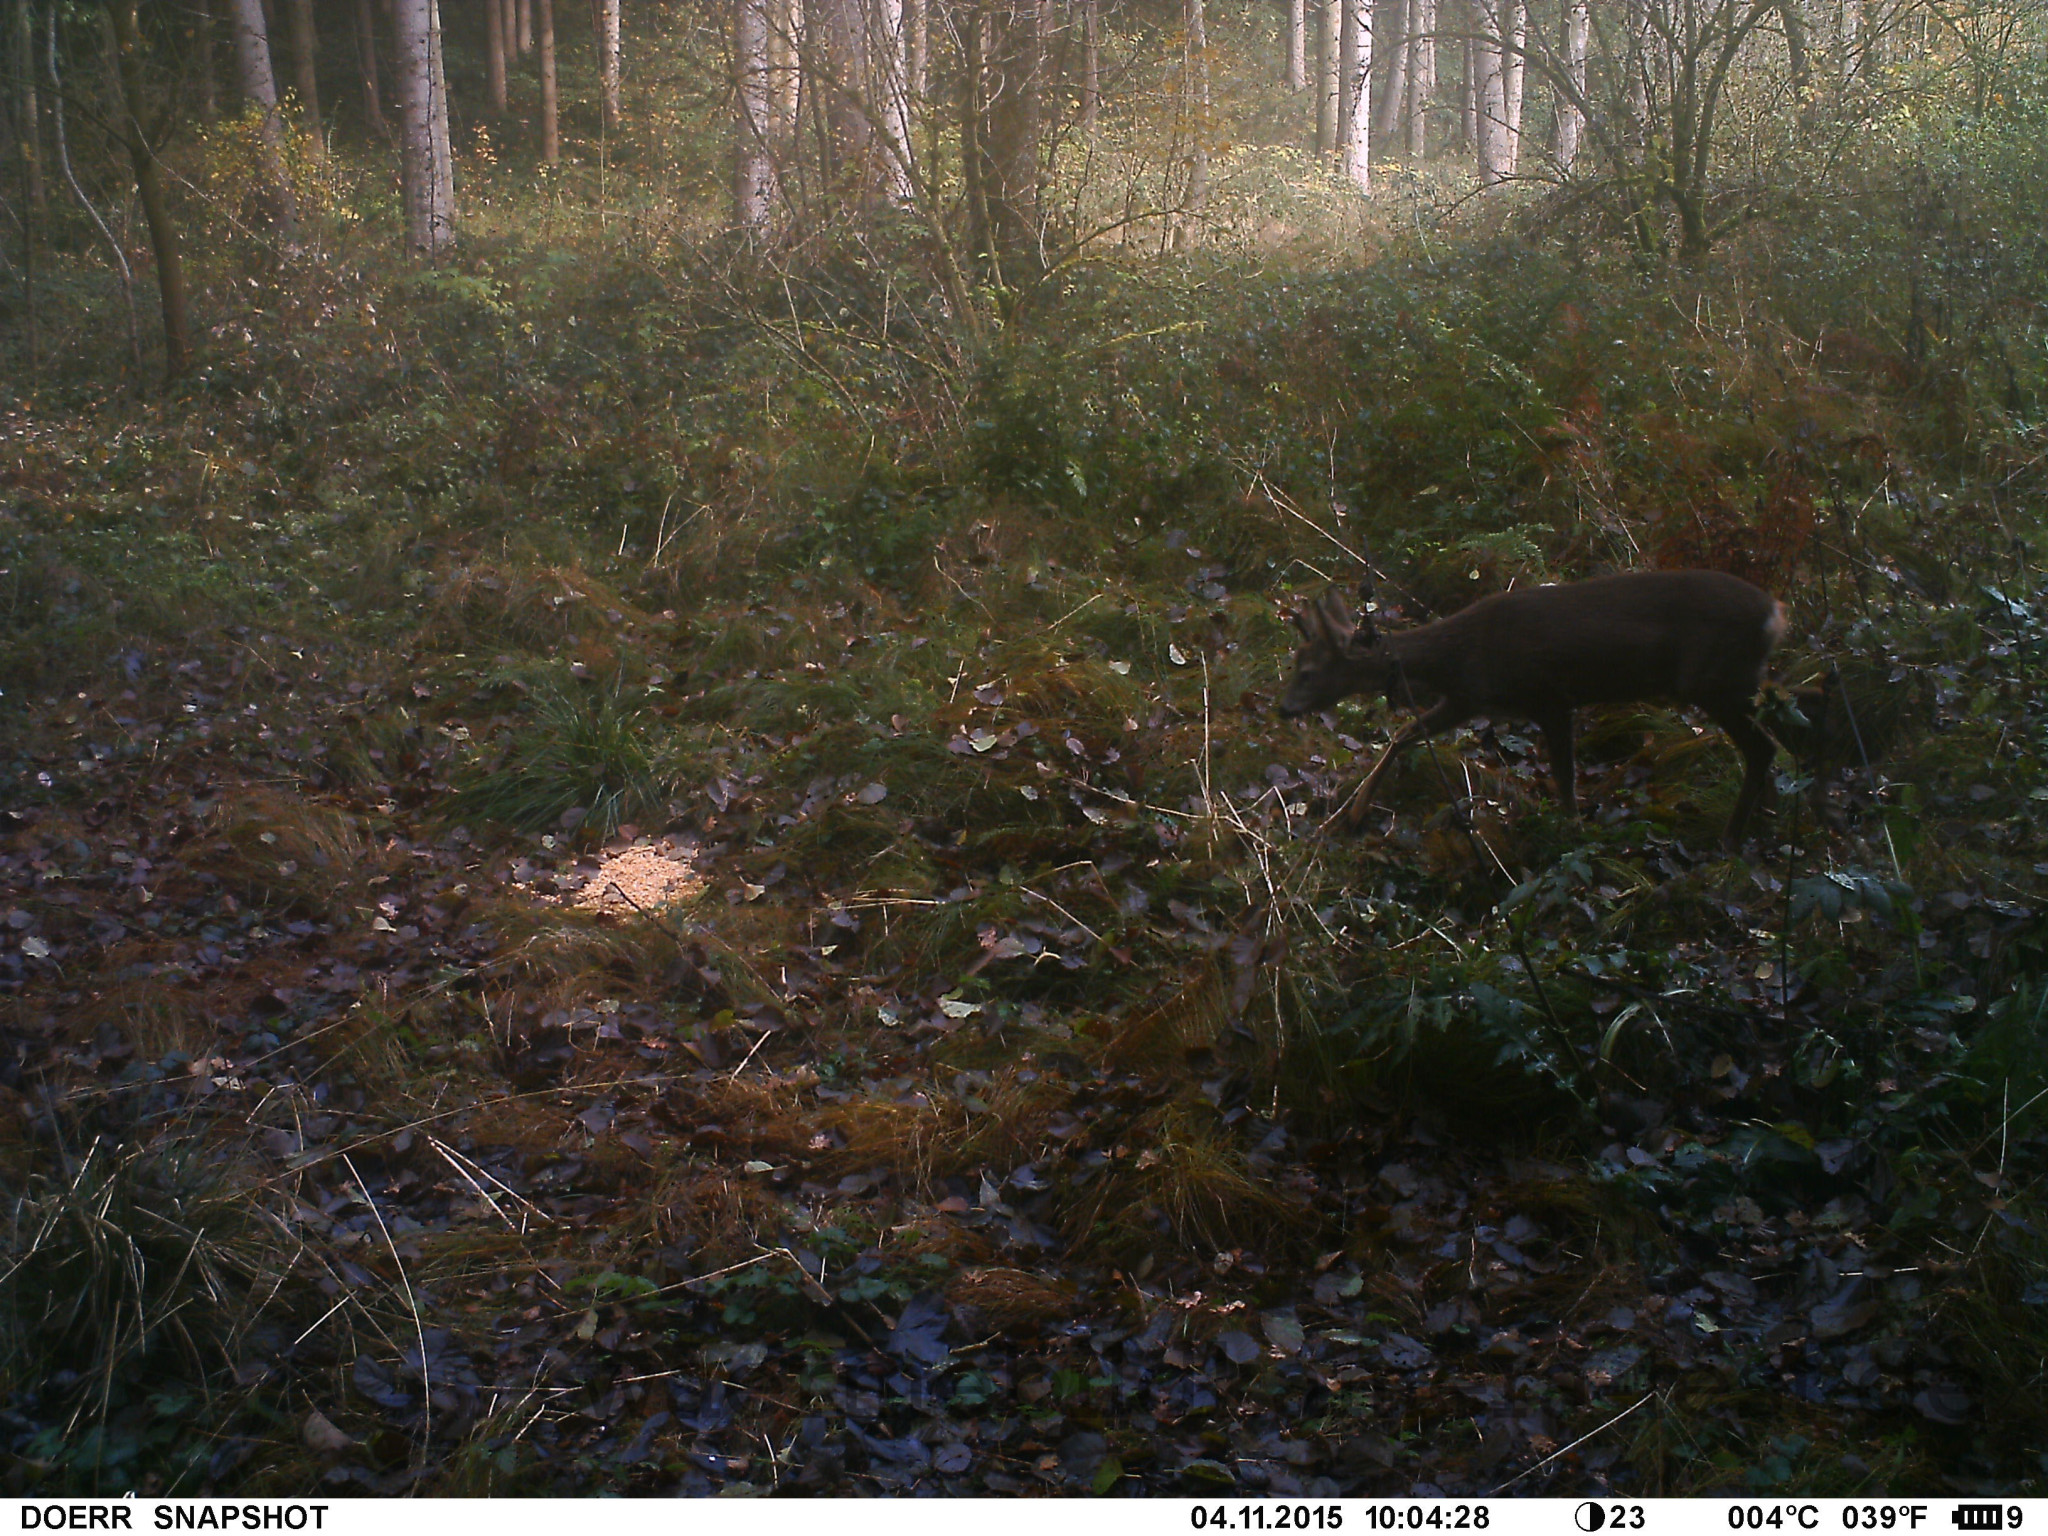 Camera Traps - Animal observation with infrared technology